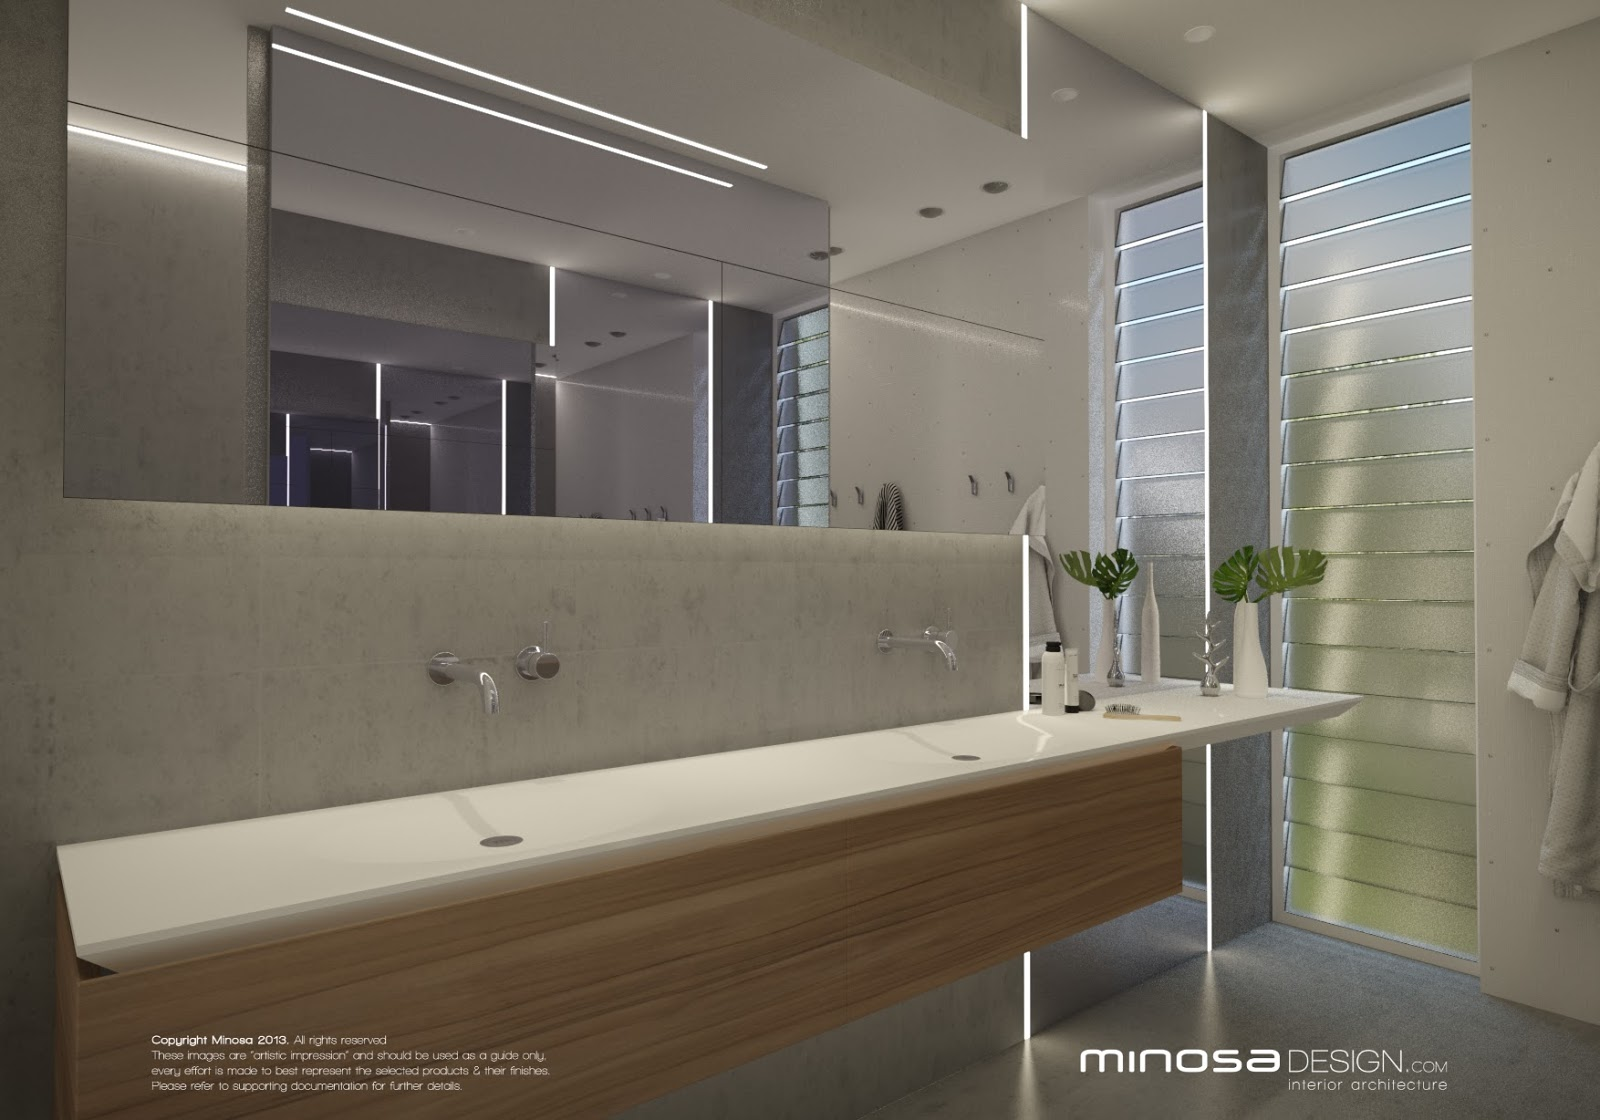 Minosa a main bathroom to share for Main bathroom remodel ideas